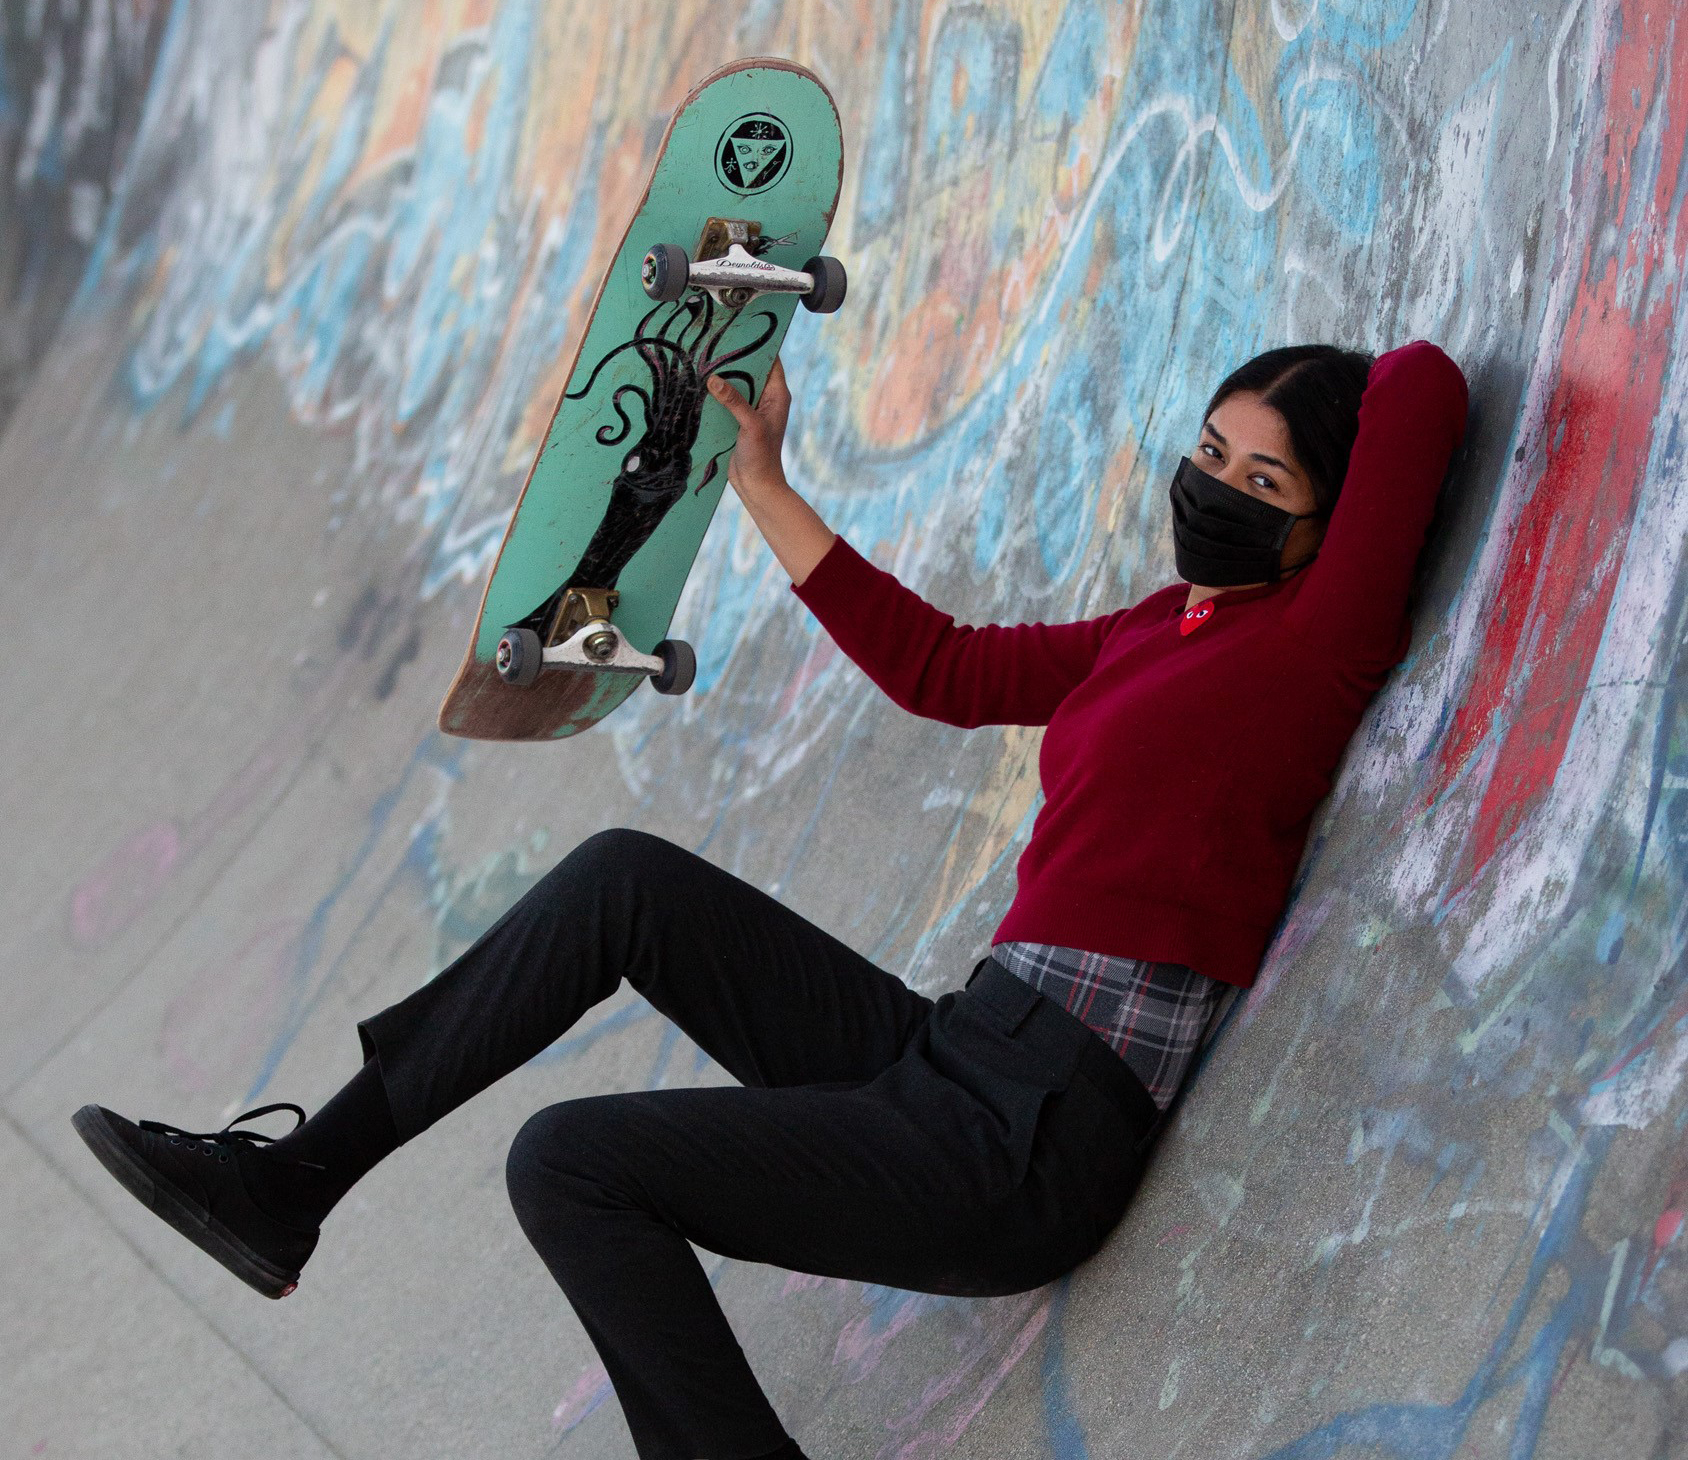 Adad Hannah photograph of a female skateboarder in a black face mask reclining in a graffit-covered half-tube